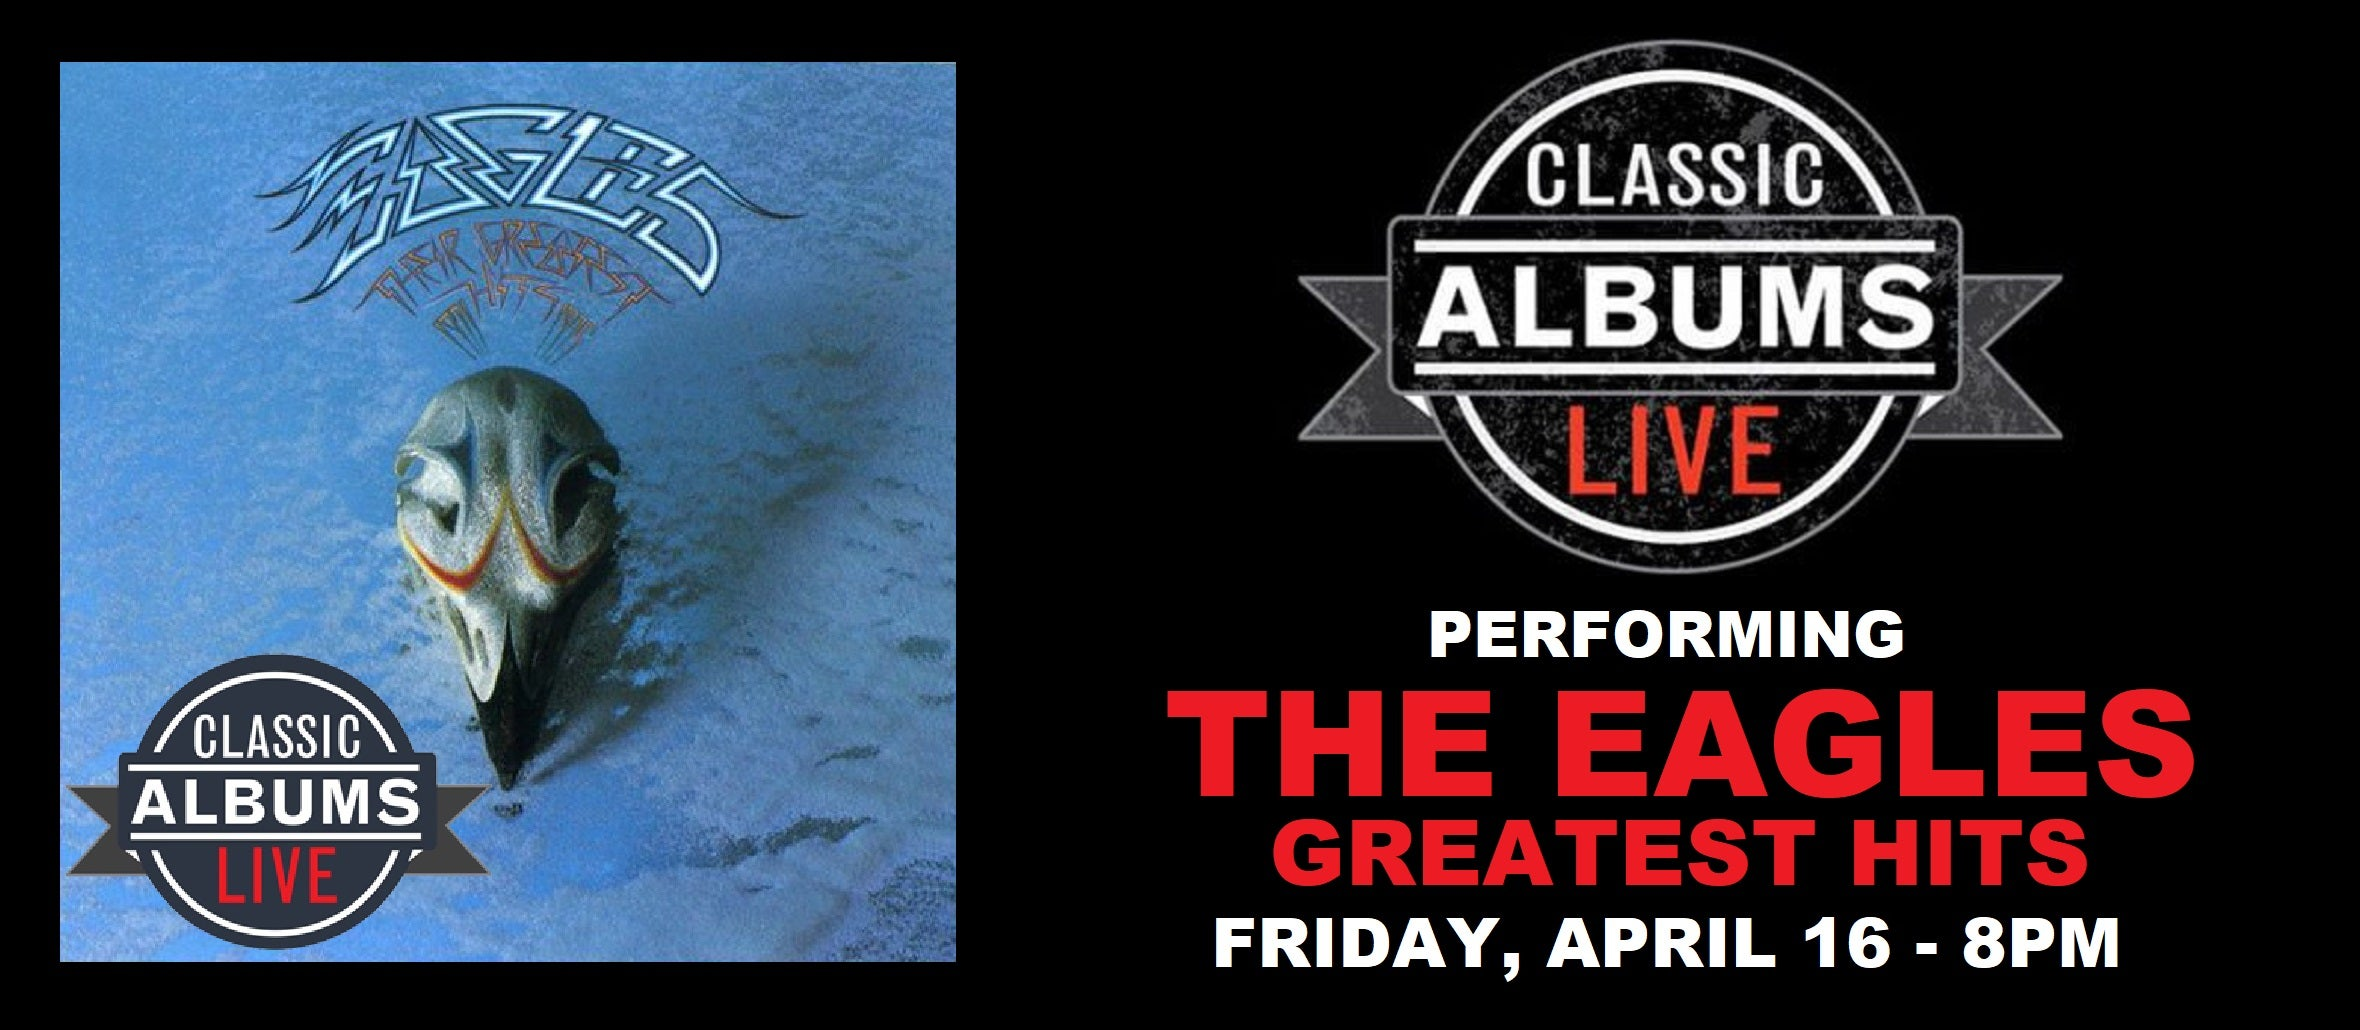 CLASSIC ALBUMS LIVE Performing THE EAGLES Greatest Hits